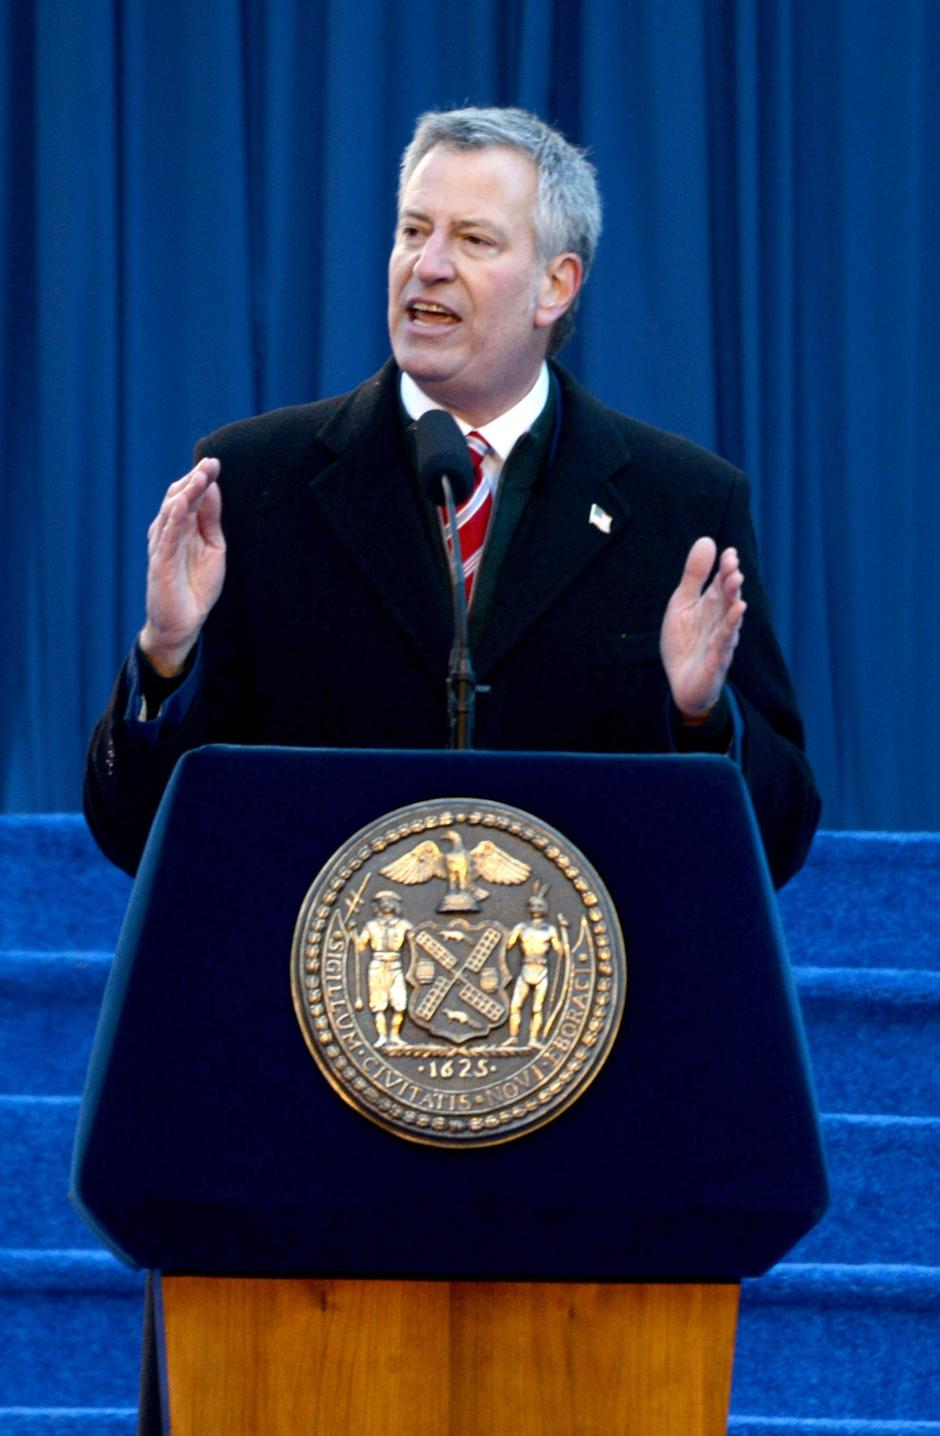 Bill de Blasio | Author: Dennis Van Tine/Press Association/PIXSELL